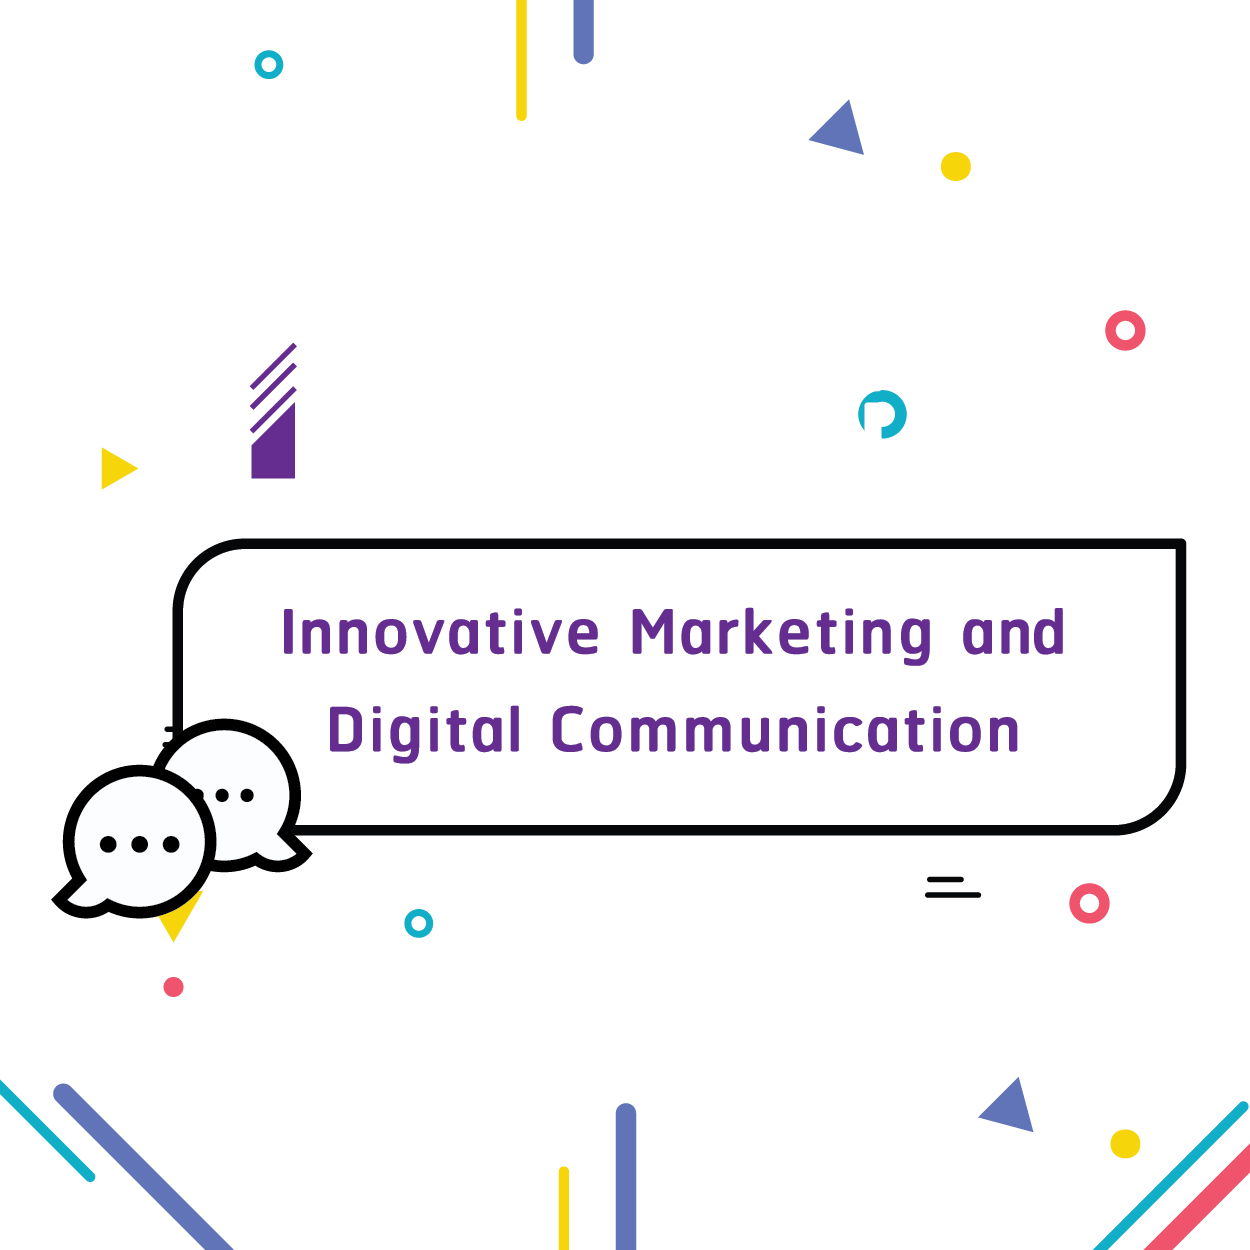 Innovative Marketing and Digital Communication